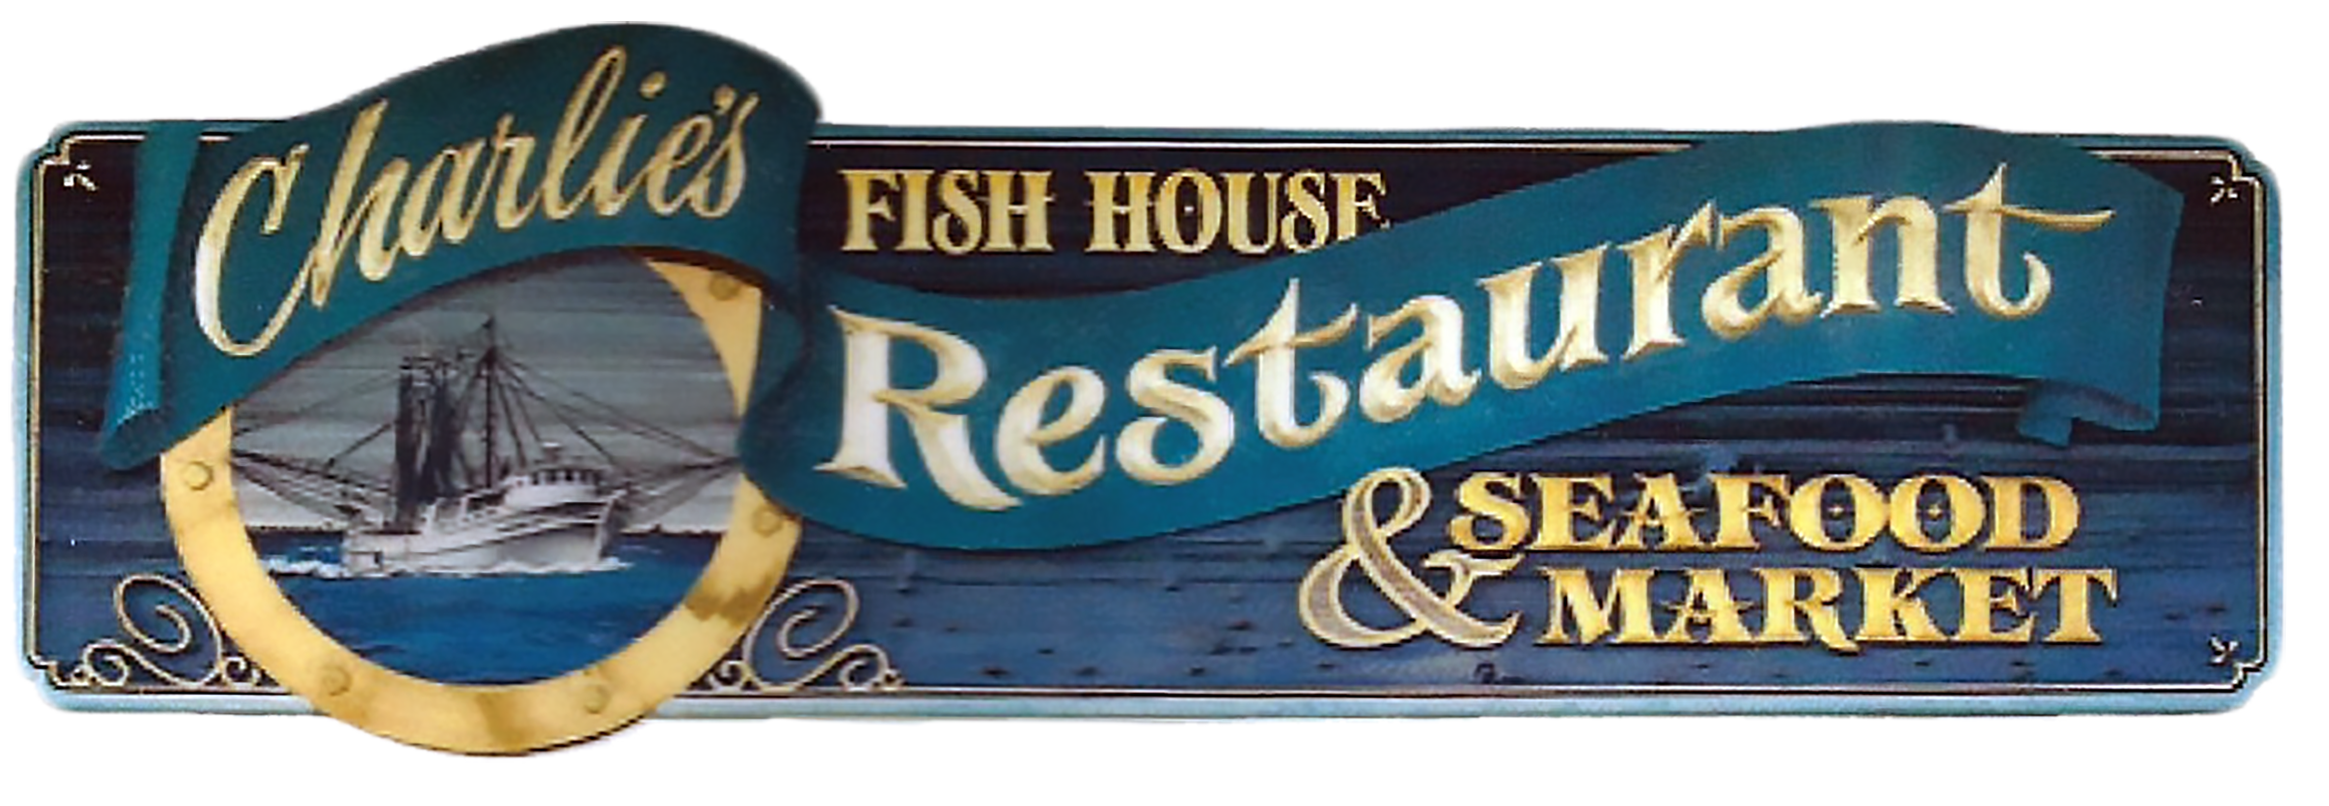 Charlie's Fish House Restaurant & Seafood Market